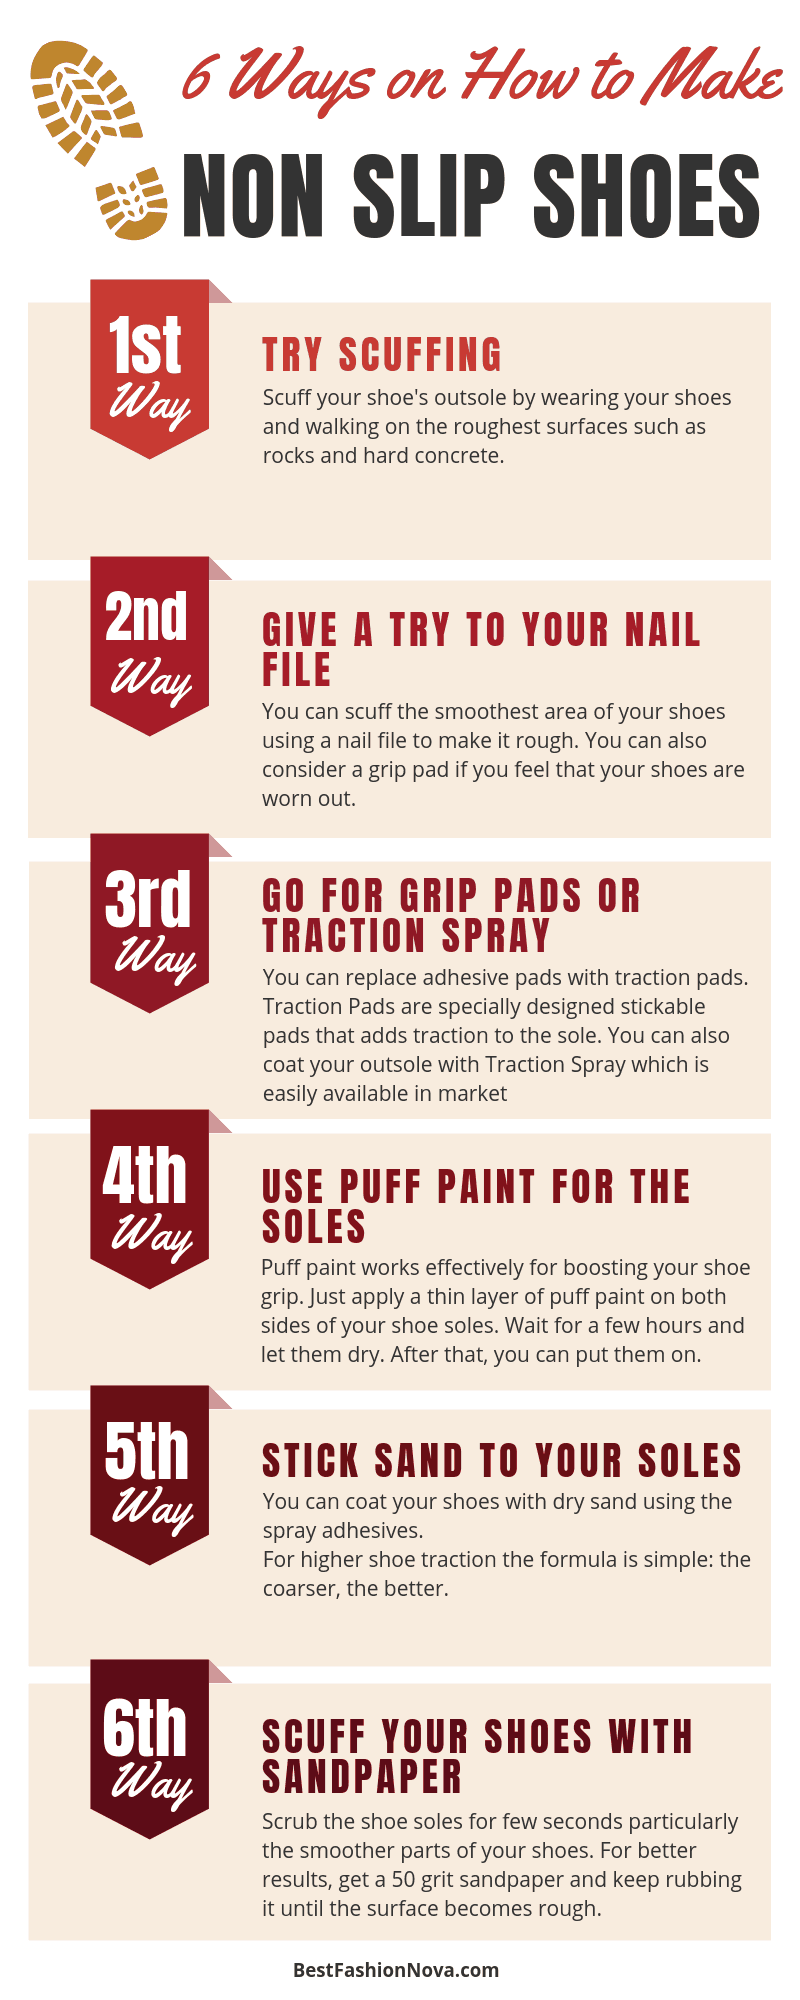 How to make non slip shoes - infographic